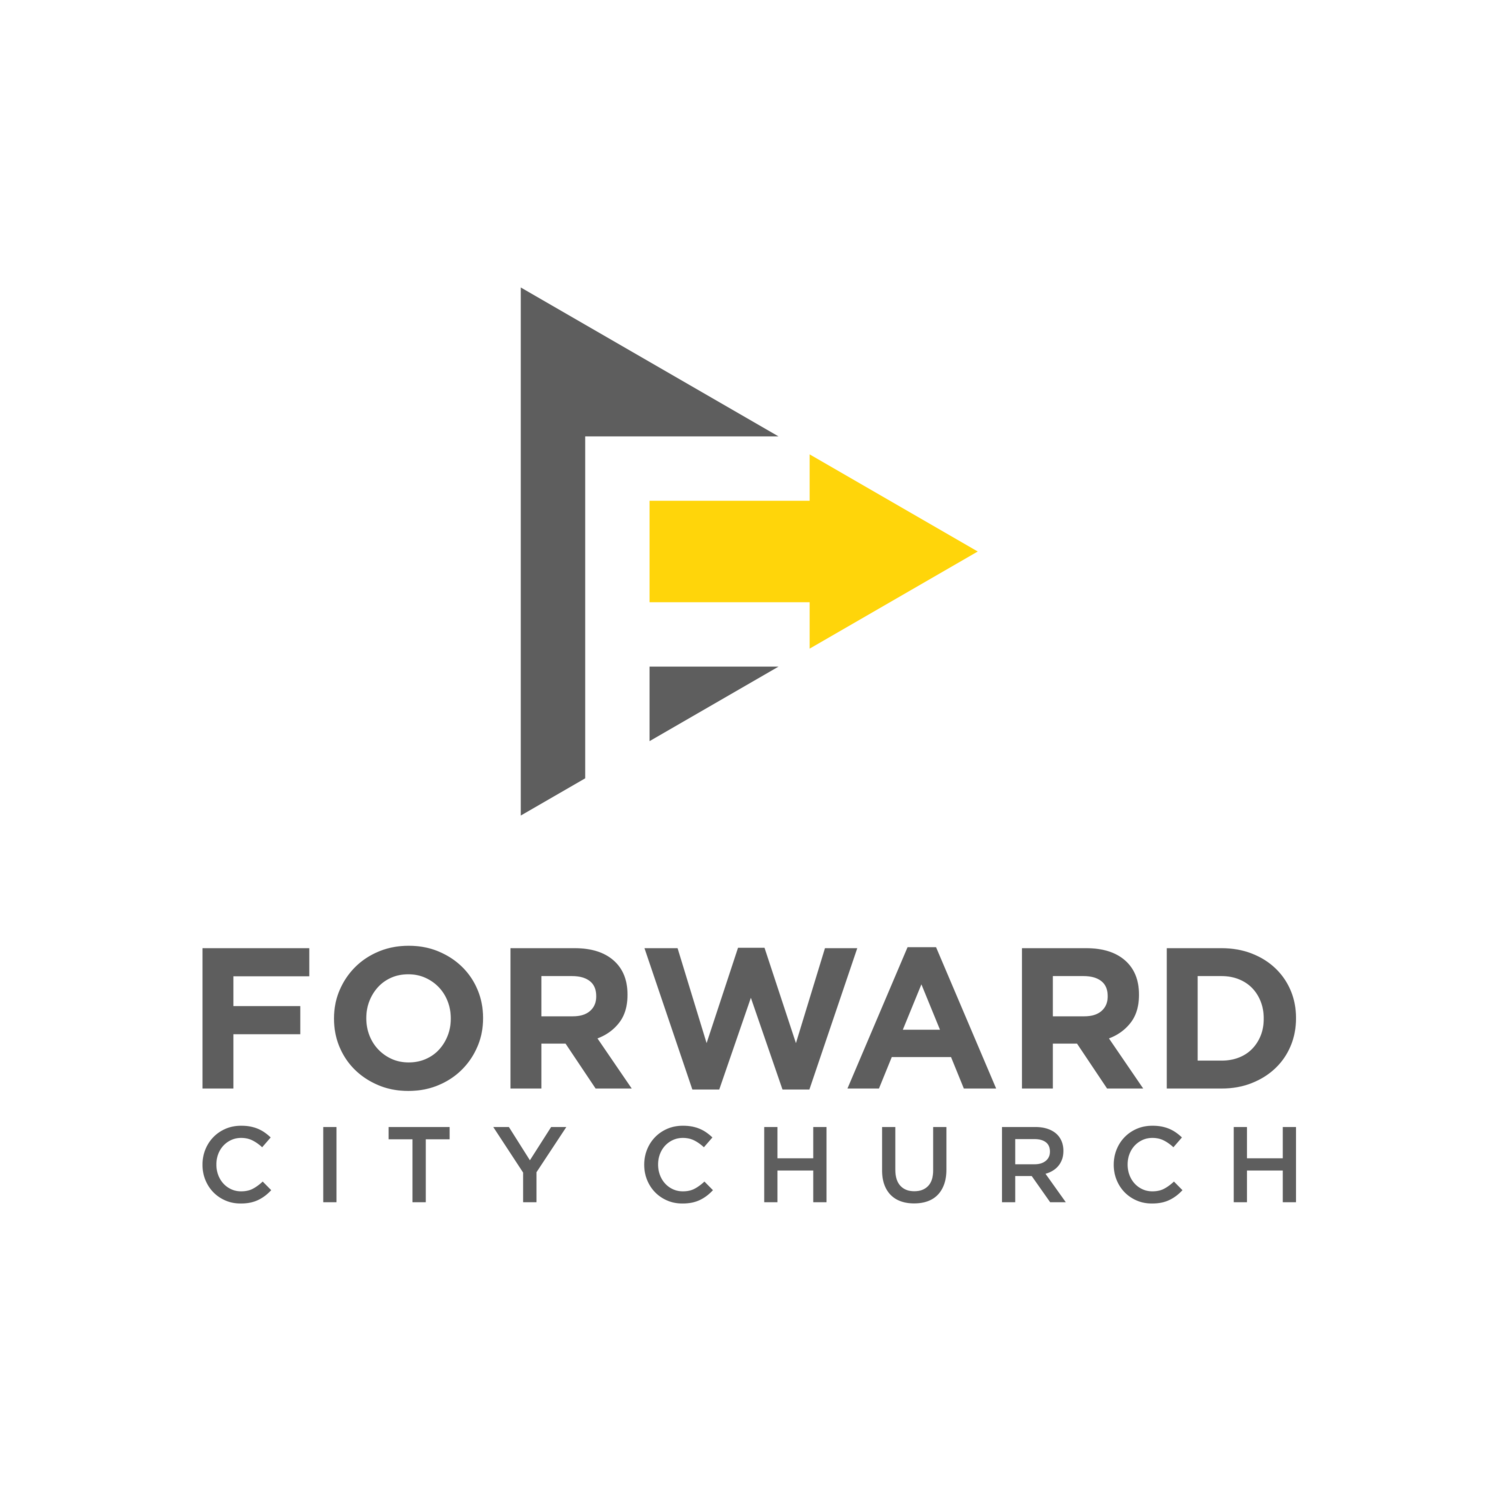 Forward City Church